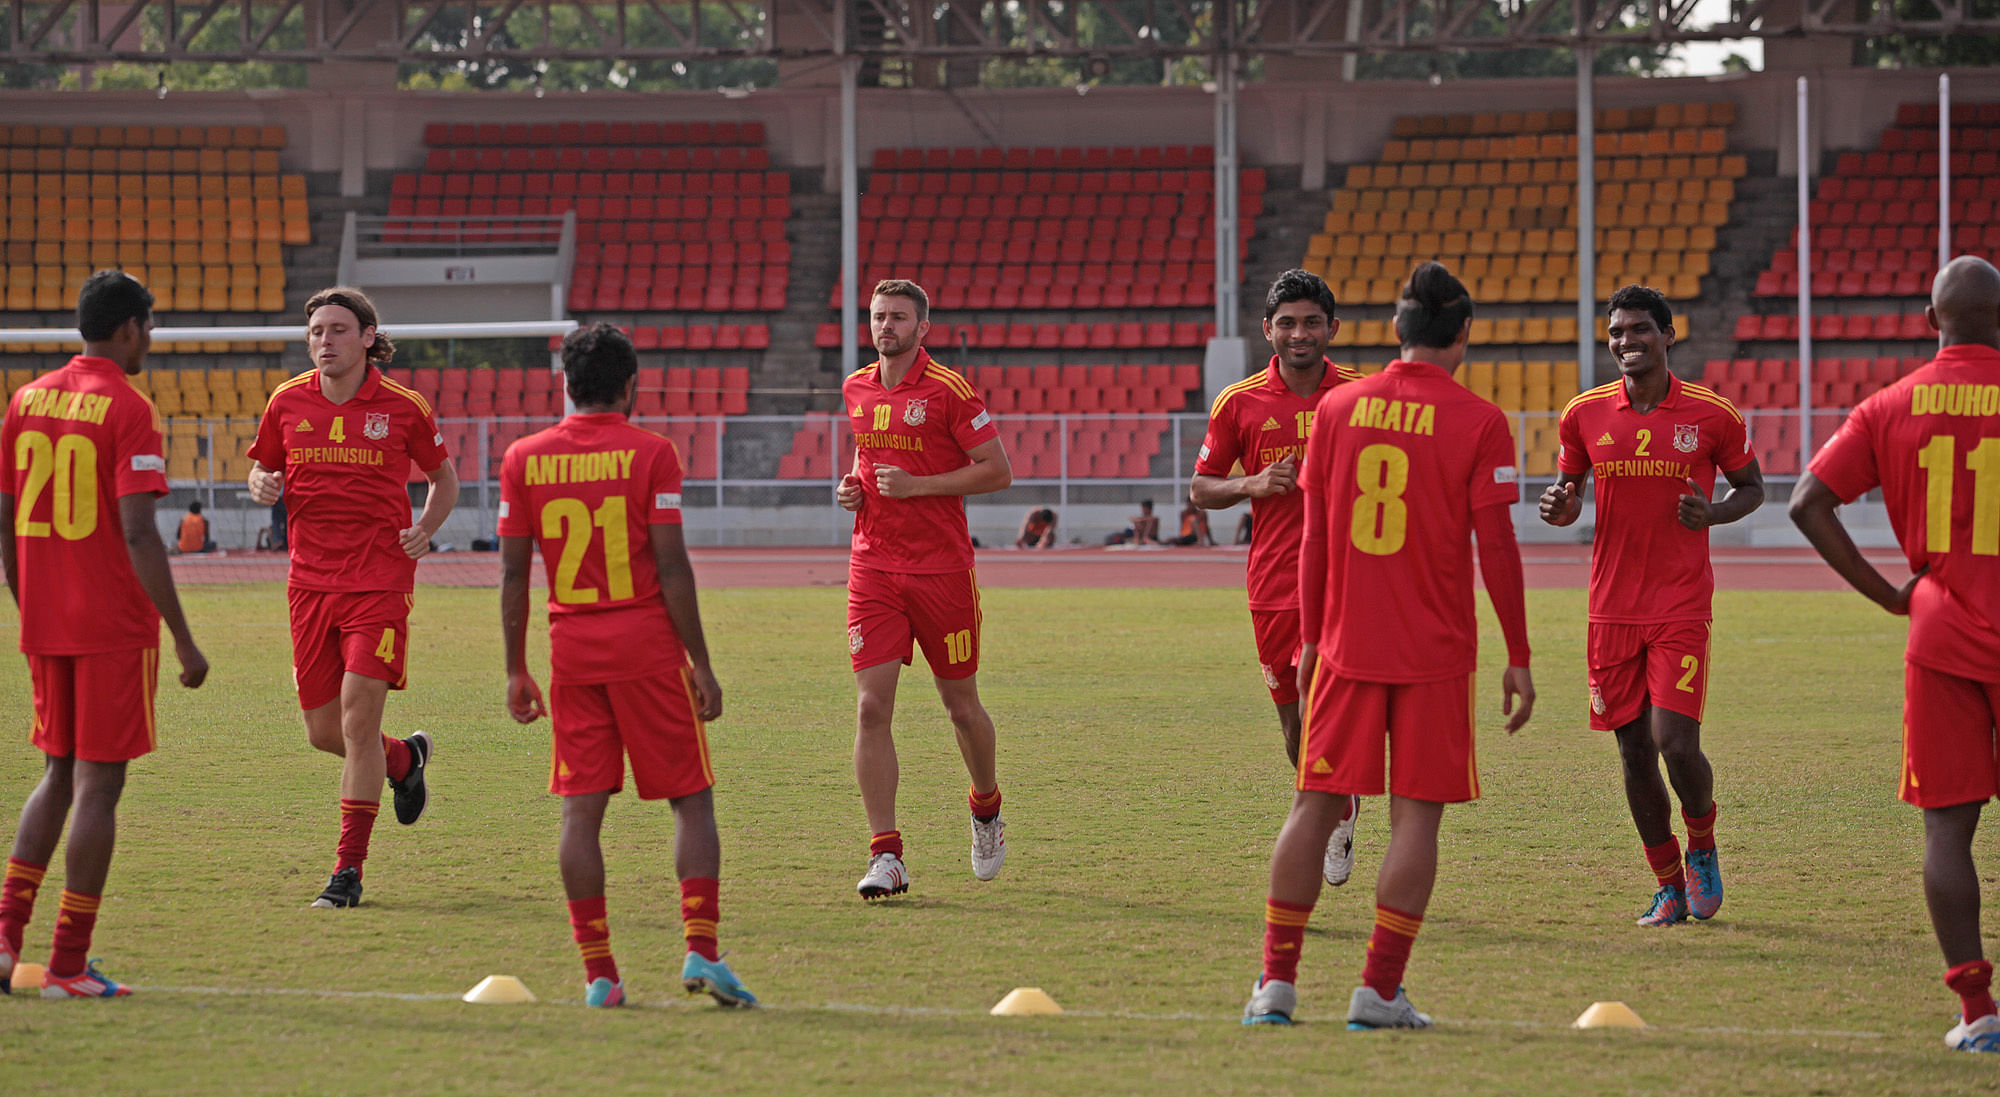 Federation Cup: Pune FC face United SC in crucial encounter